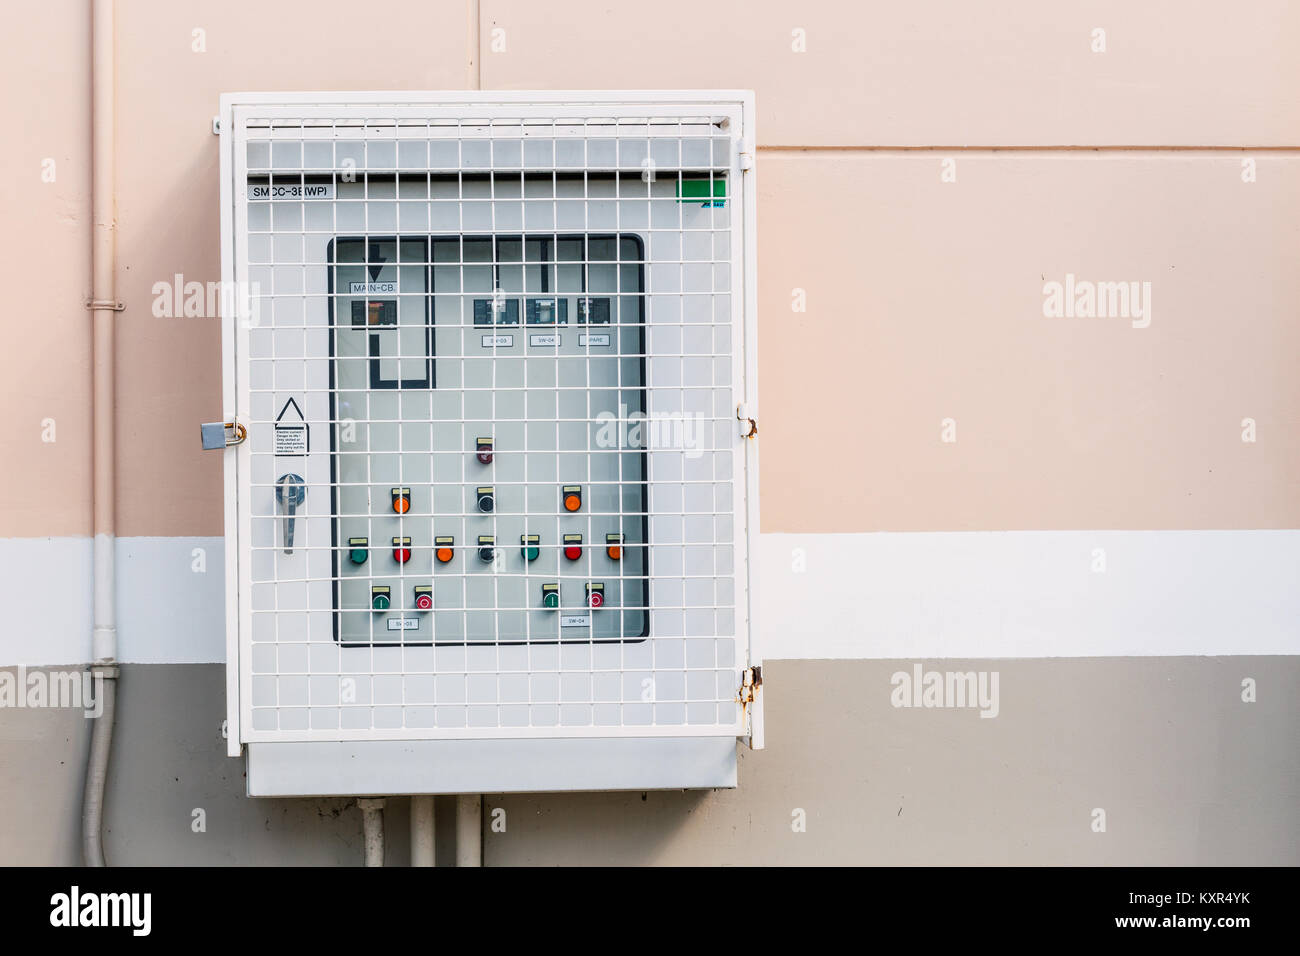 Outdoor Electricity switch power control safety box on wall with space for text Stock Photo